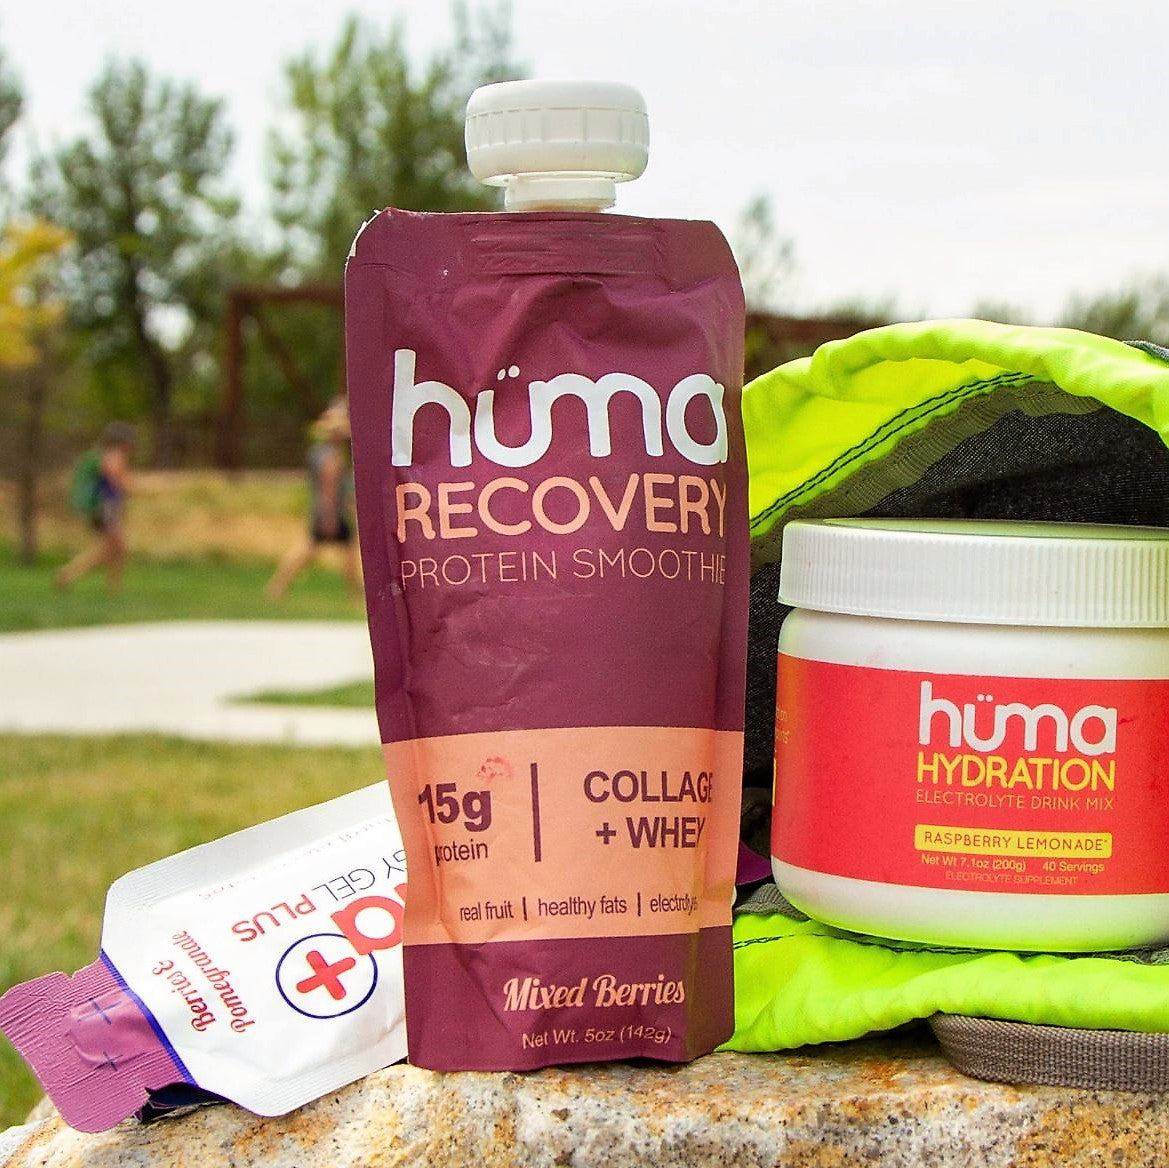 Hüma Recovery Protein Smoothie